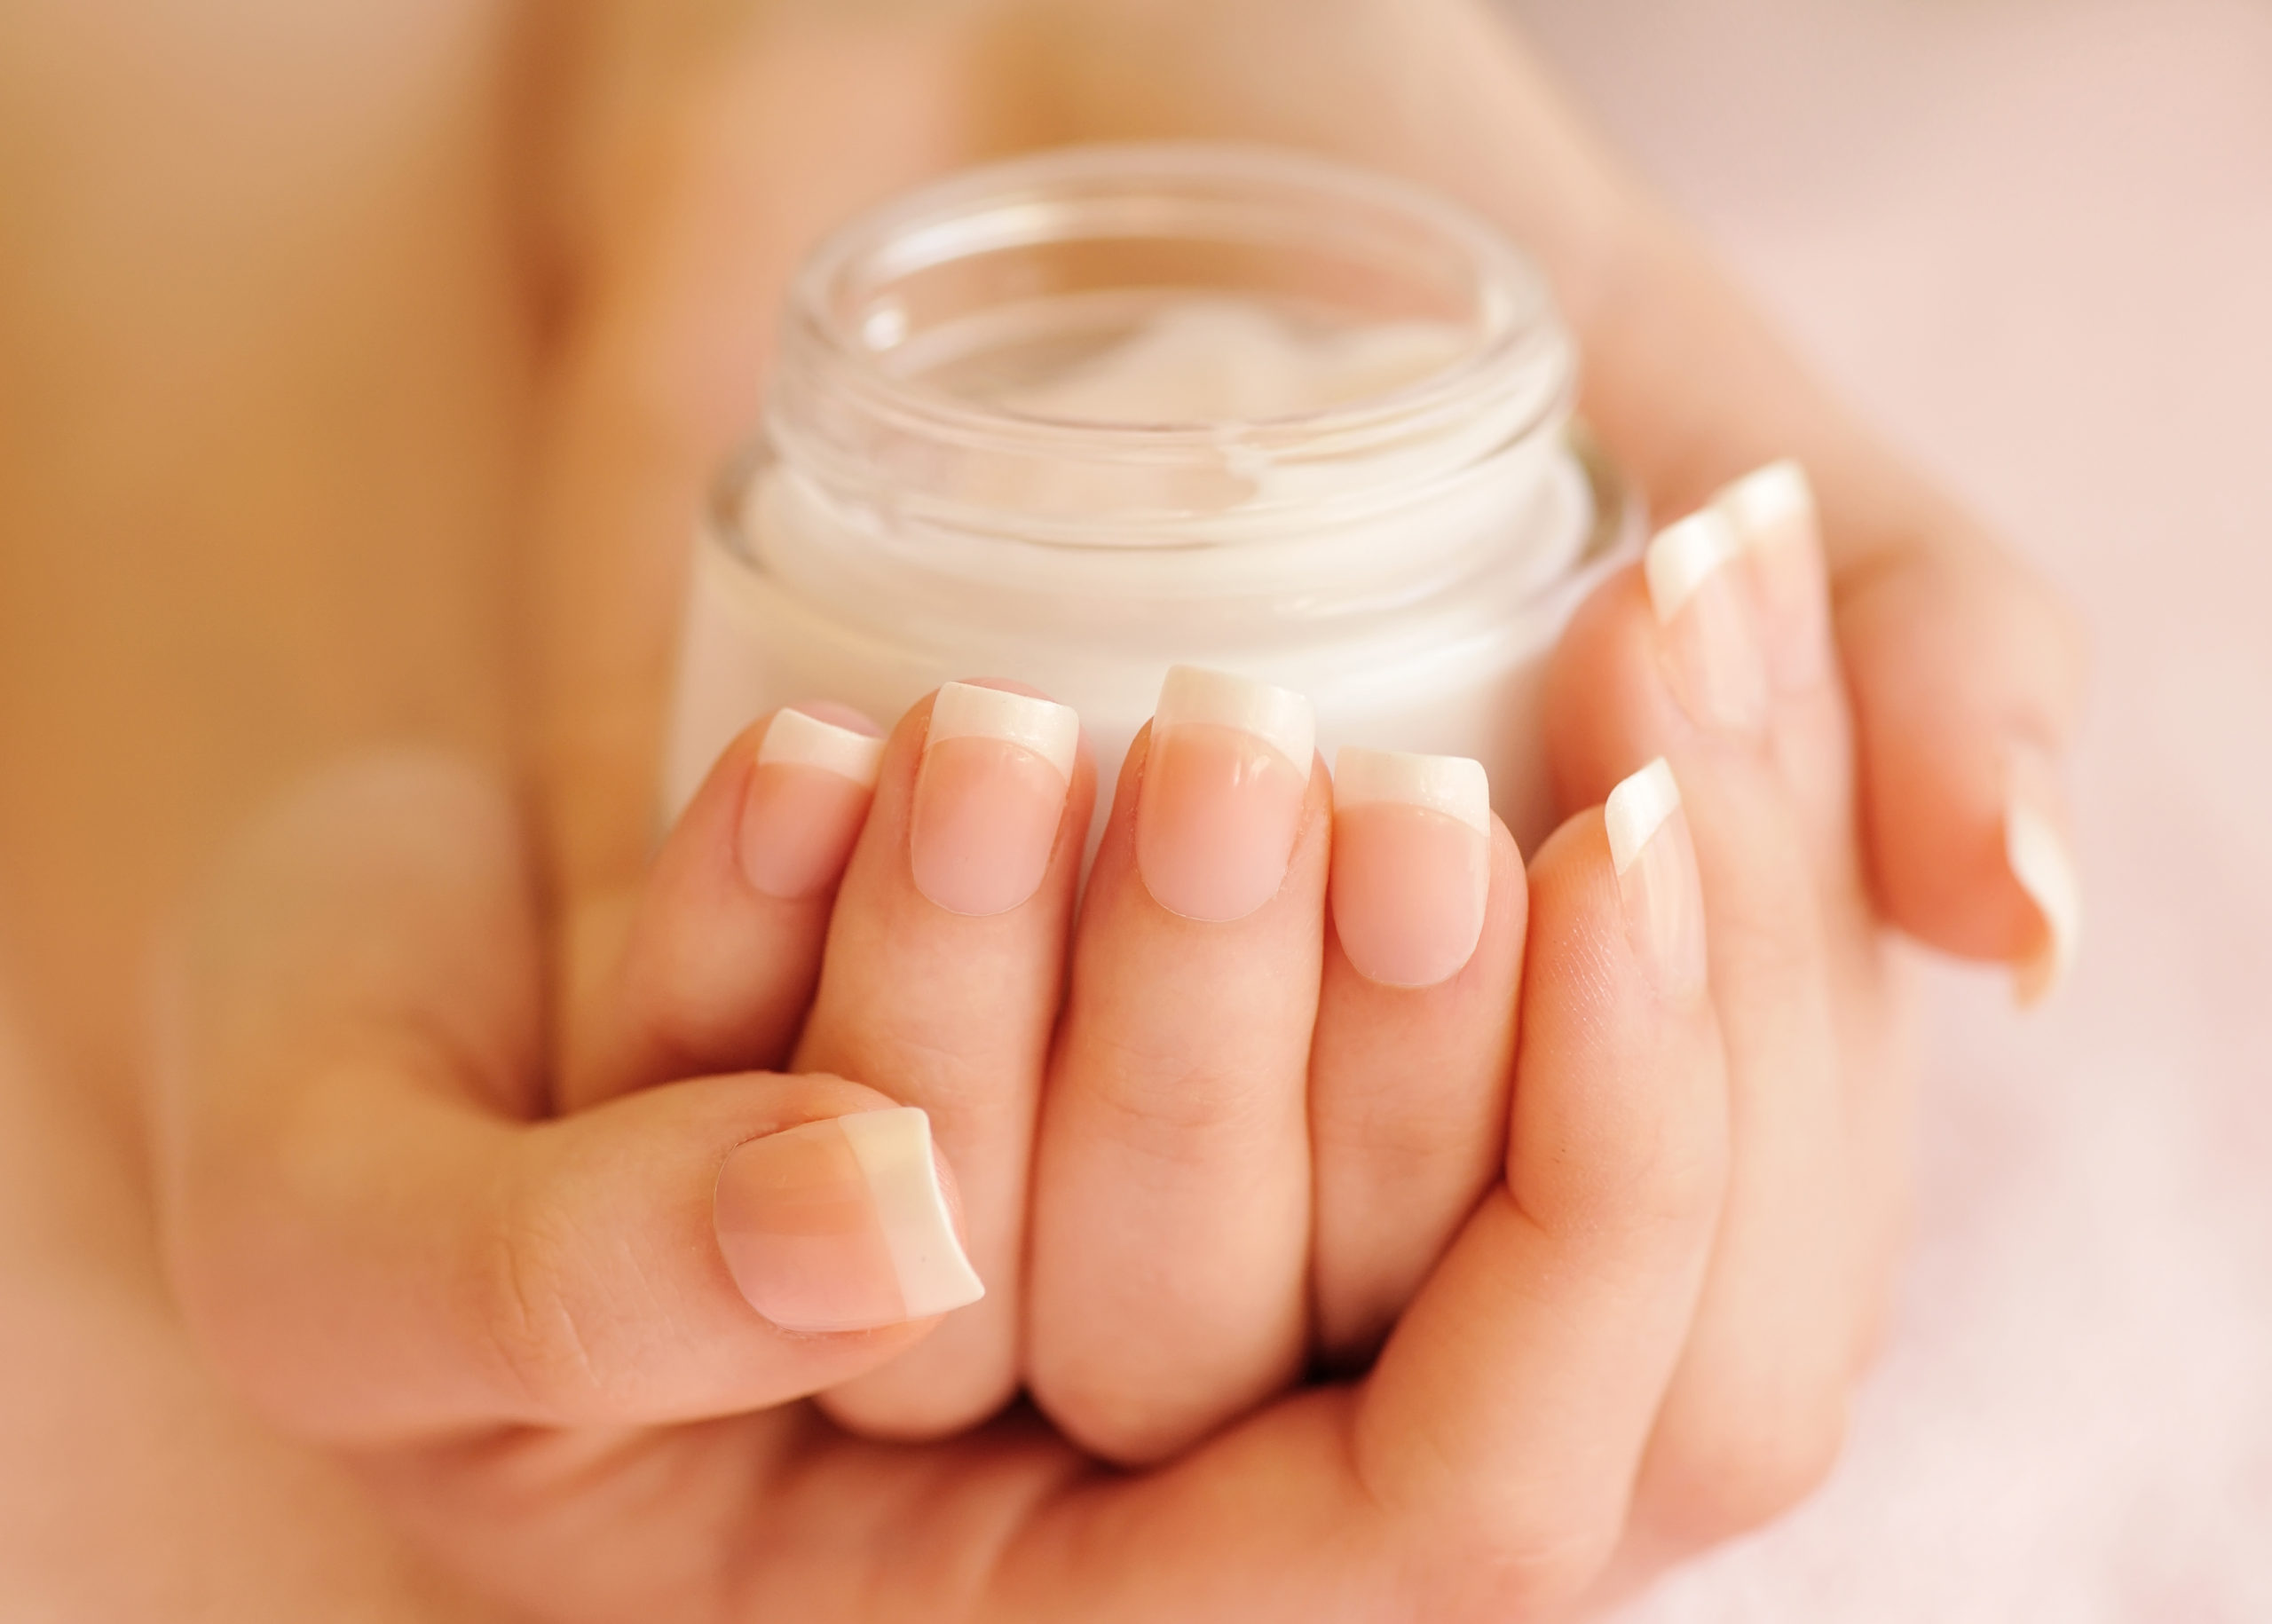 Benefits Of Using A Day Cream